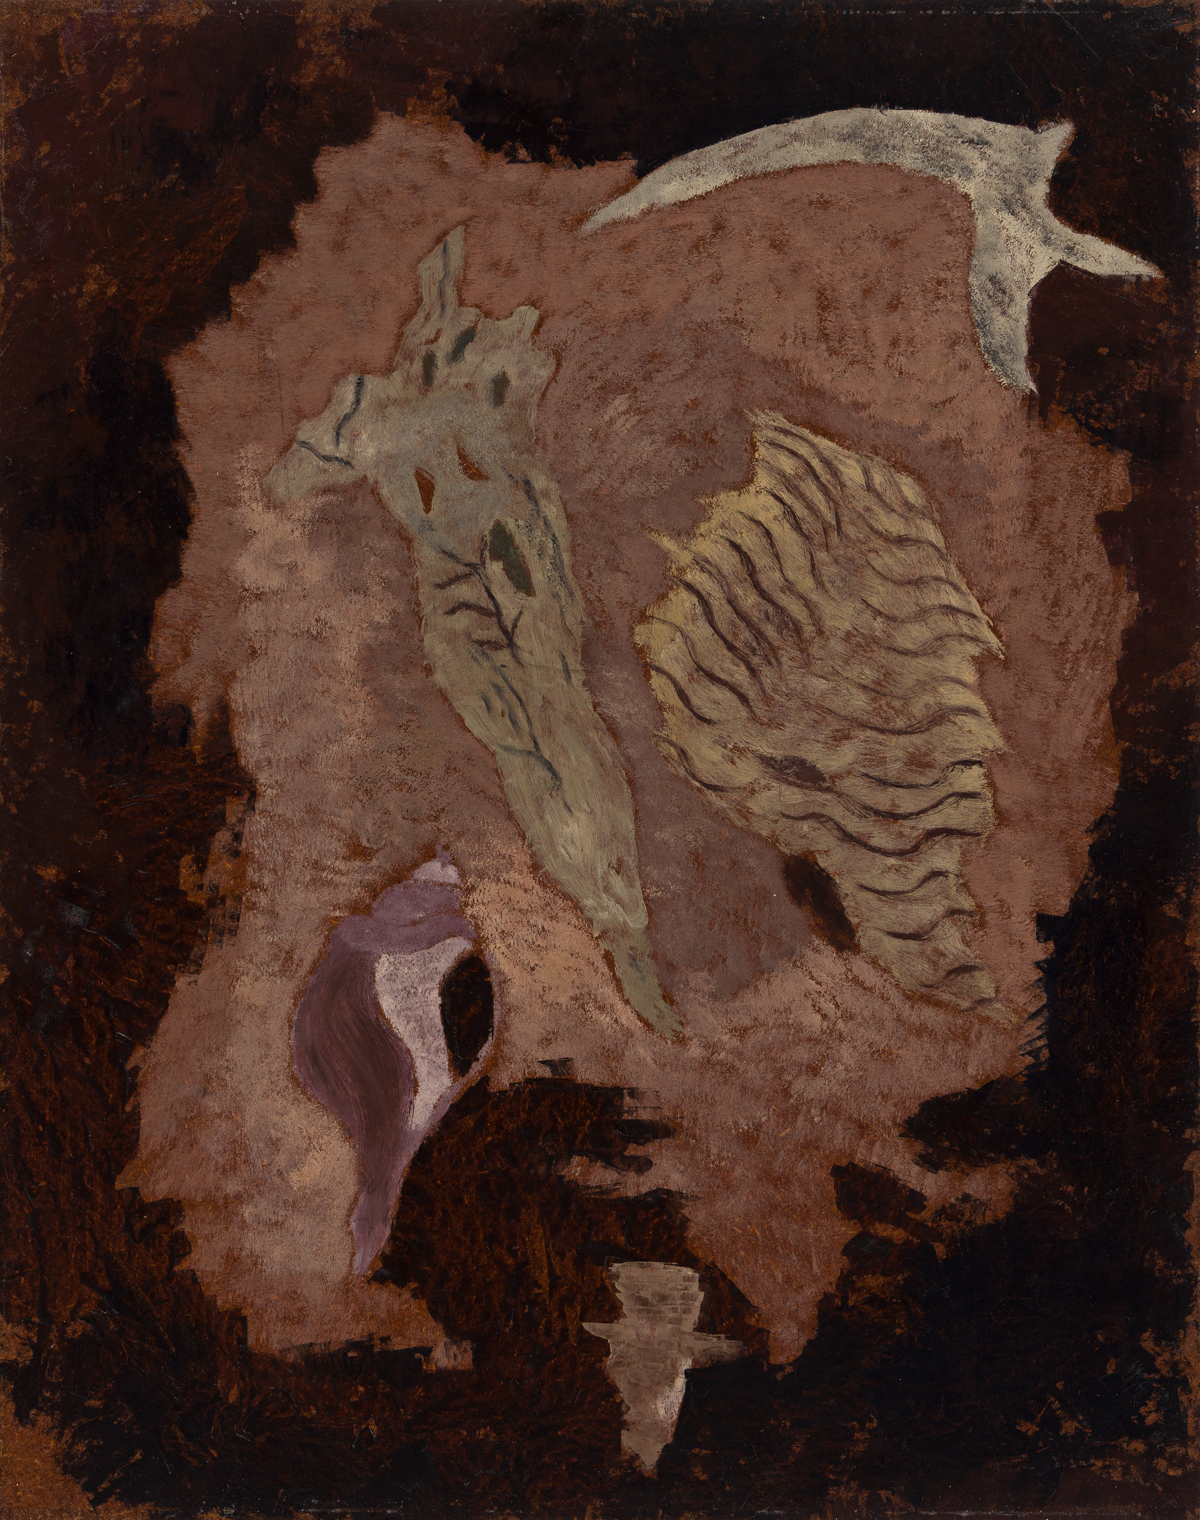 THEODOROS STAMOS (1922 - 1997, AMERICAN) What the Wind Does, (Still Life, Fire Island).